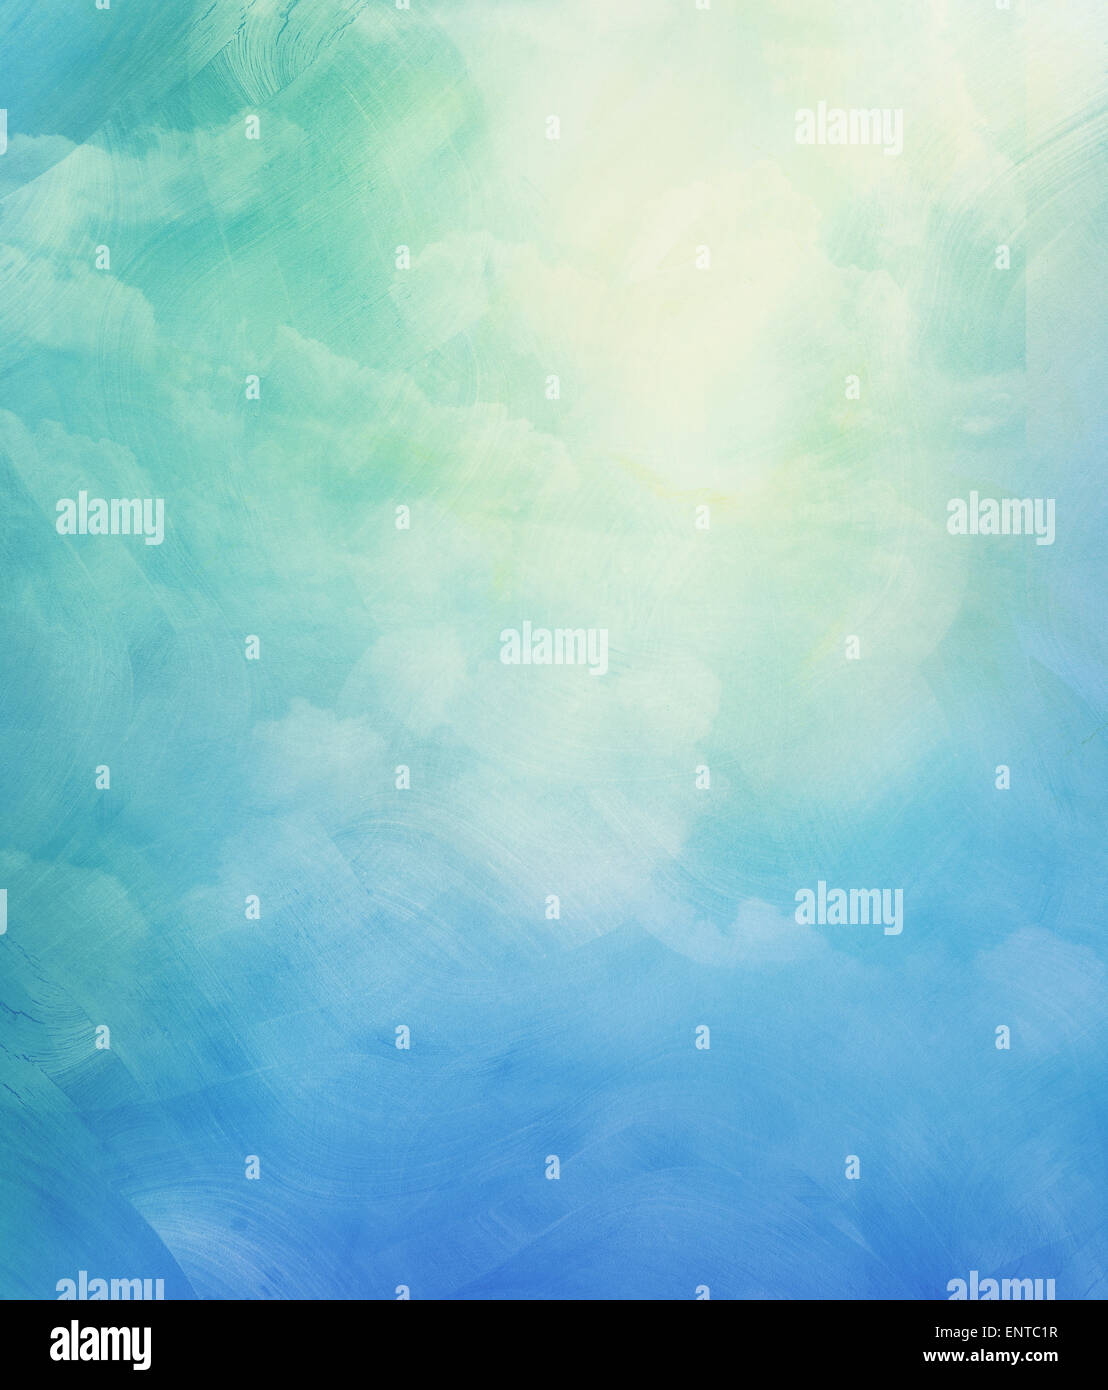 Clouds and sky on blue watercolor background - Stock Image